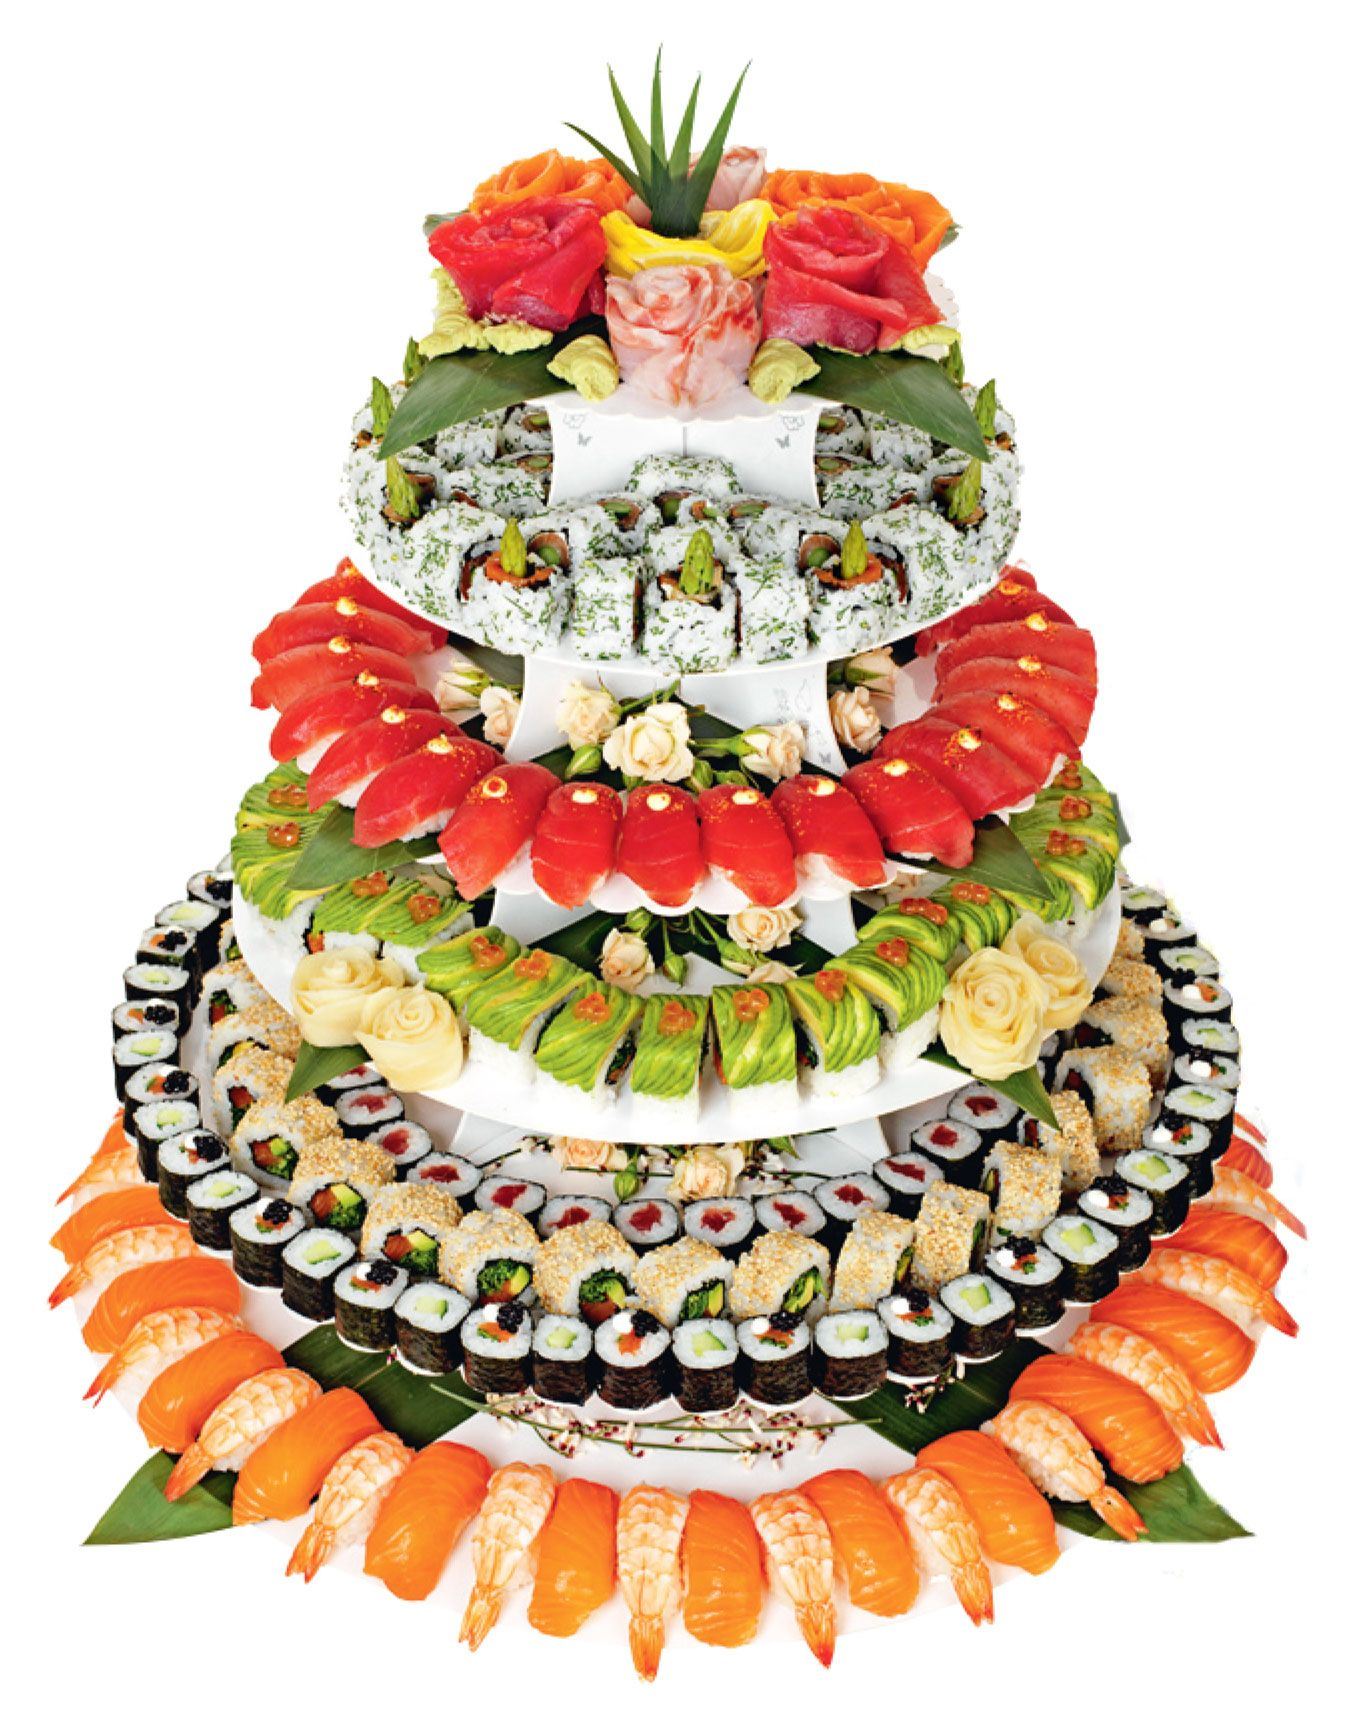 Sushi Wedding Cake   Who knew it was a thing | Romance and Wedding